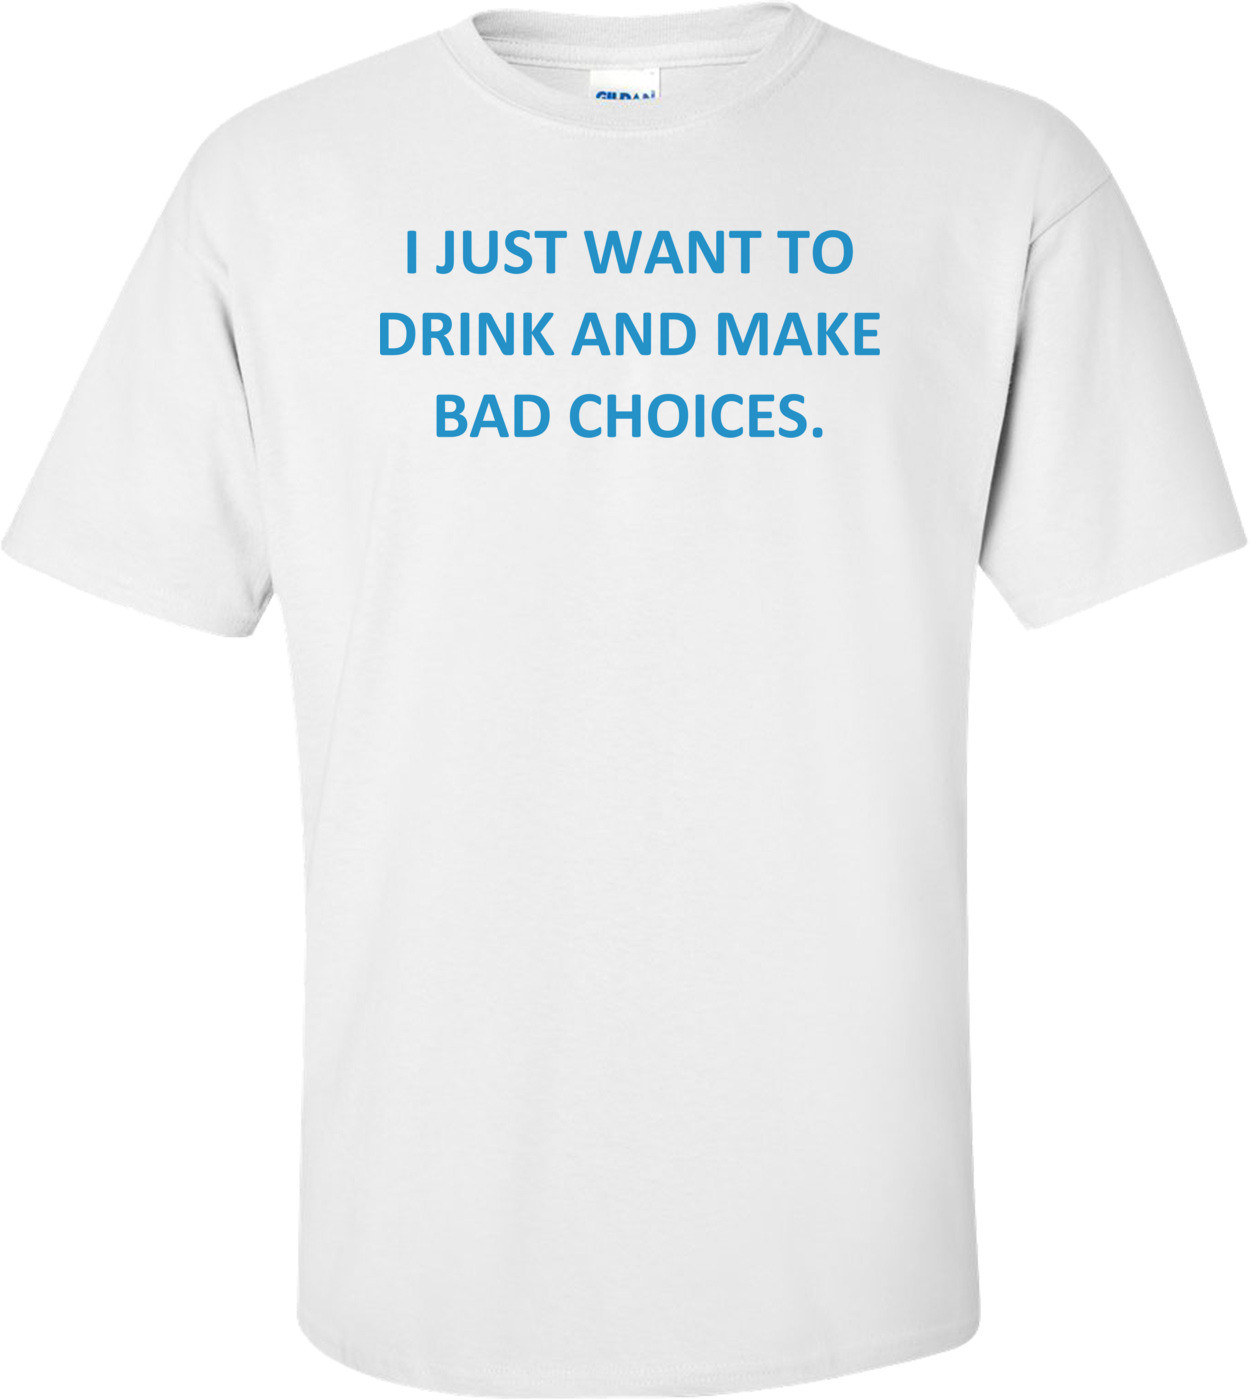 I JUST WANT TO DRINK AND MAKE BAD CHOICES. Shirt